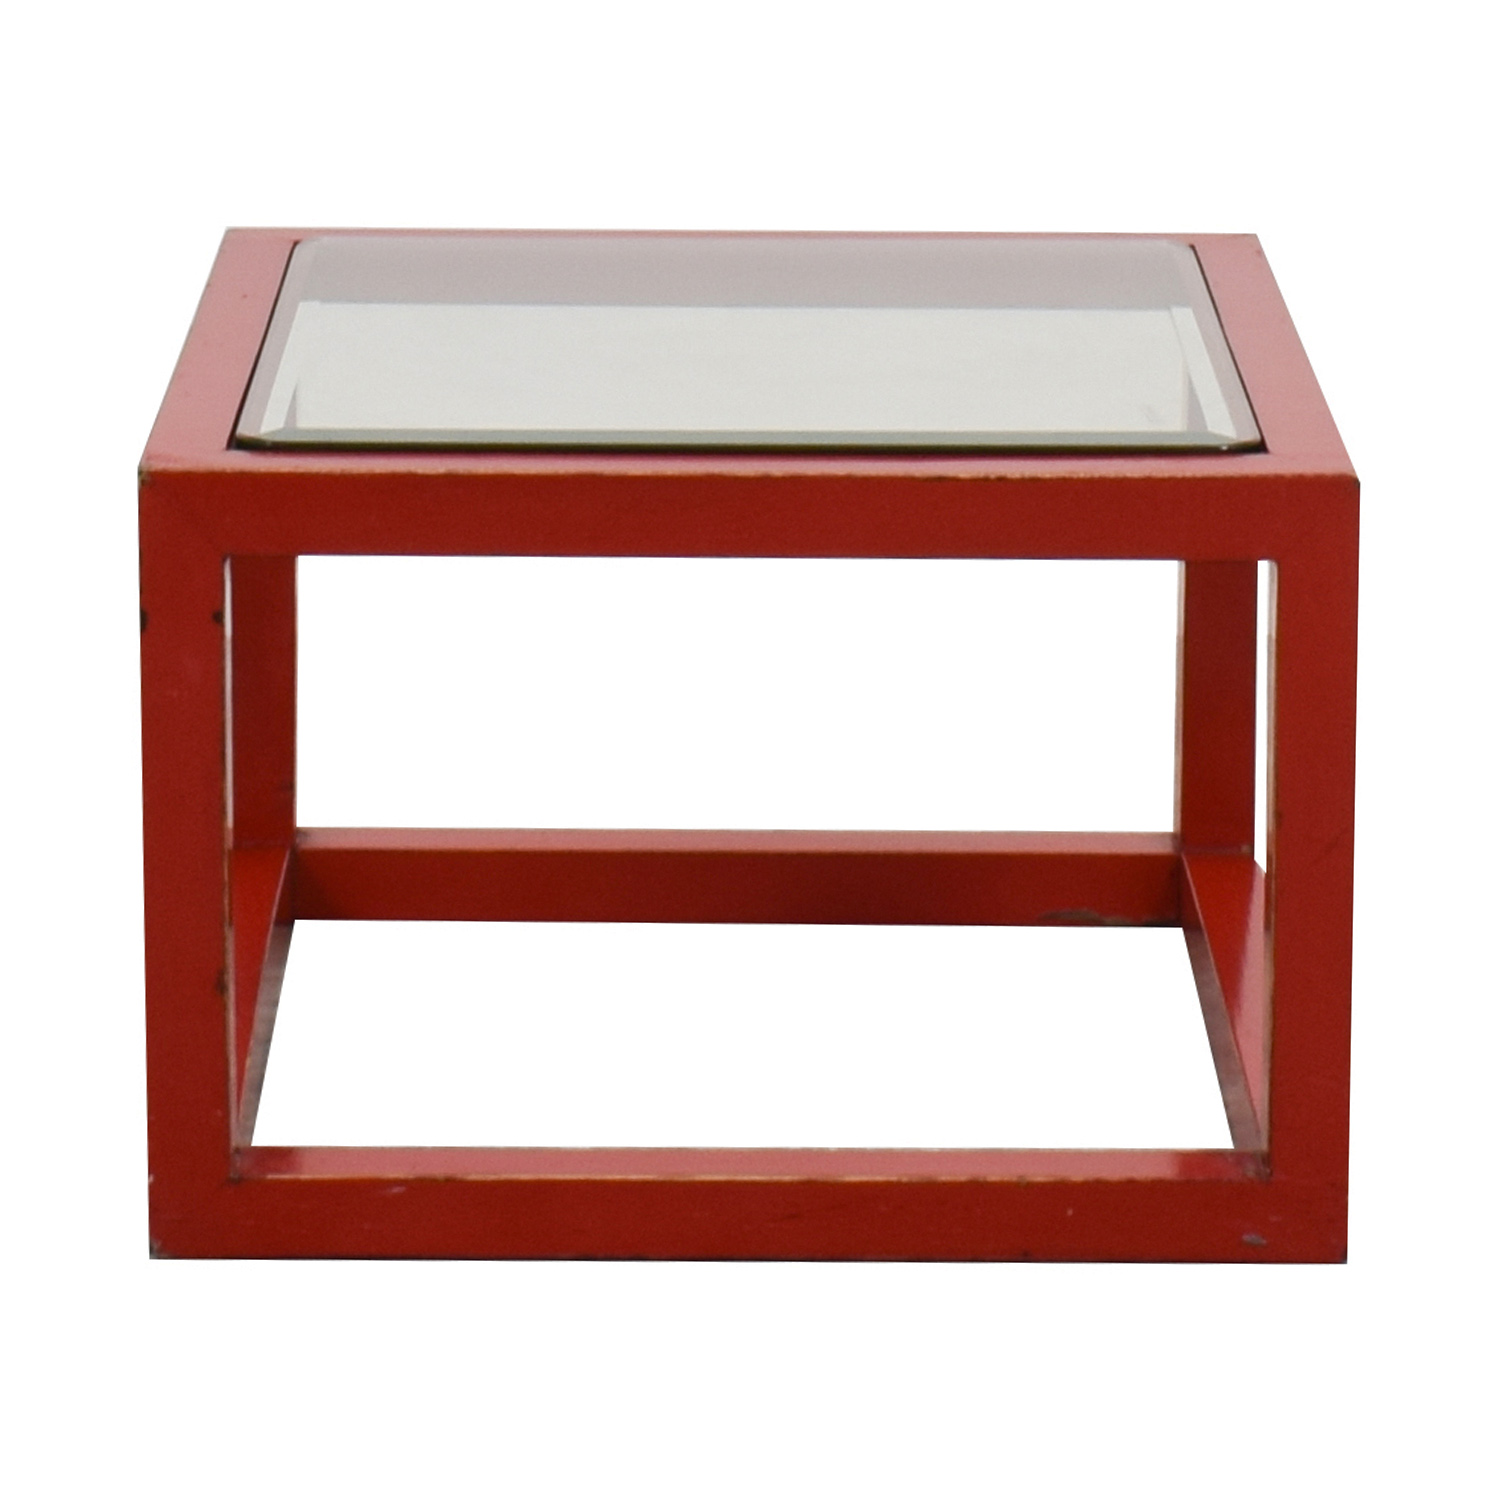 shop Crate & Barrel Modern Glass Top Red Coffee Table Crate & Barrel Coffee Tables